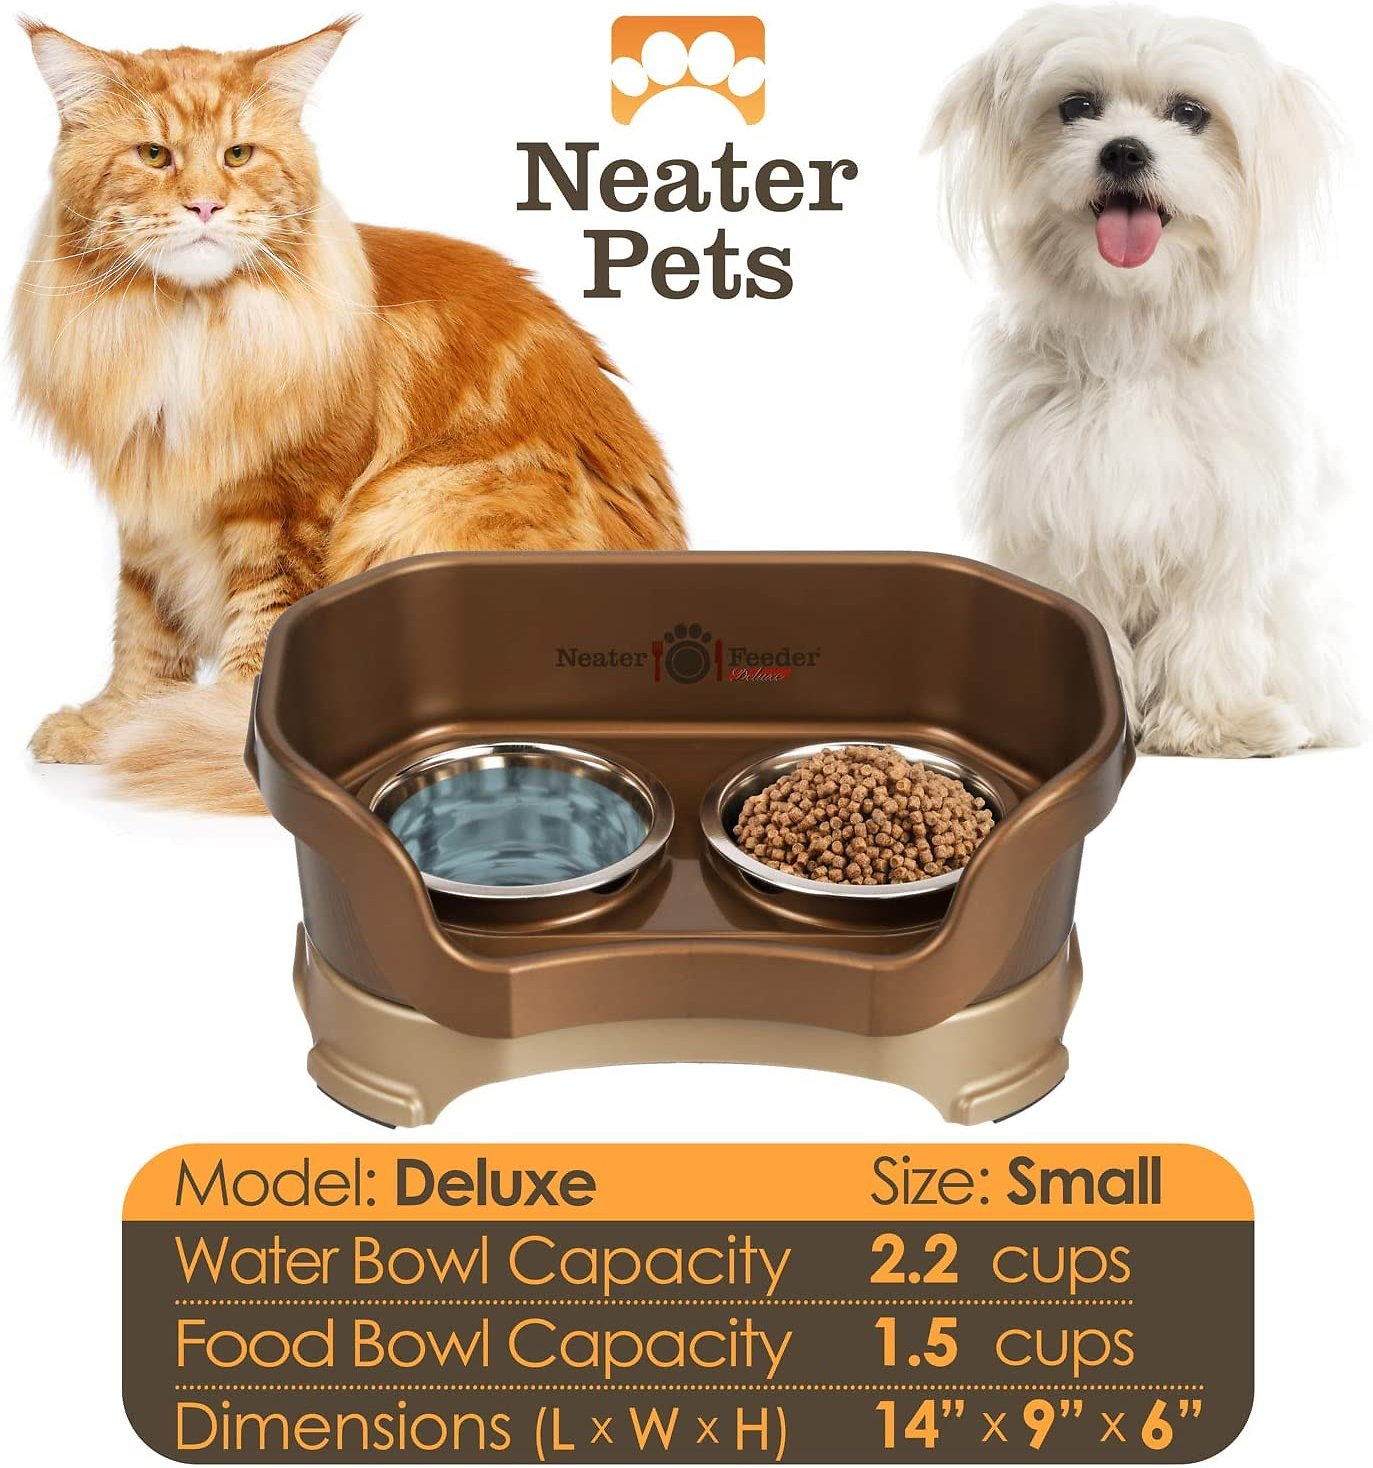 The Mess Proof Elevated Bowls No cranberry Lower Price with Neater Feeder Deluxe Small Dog